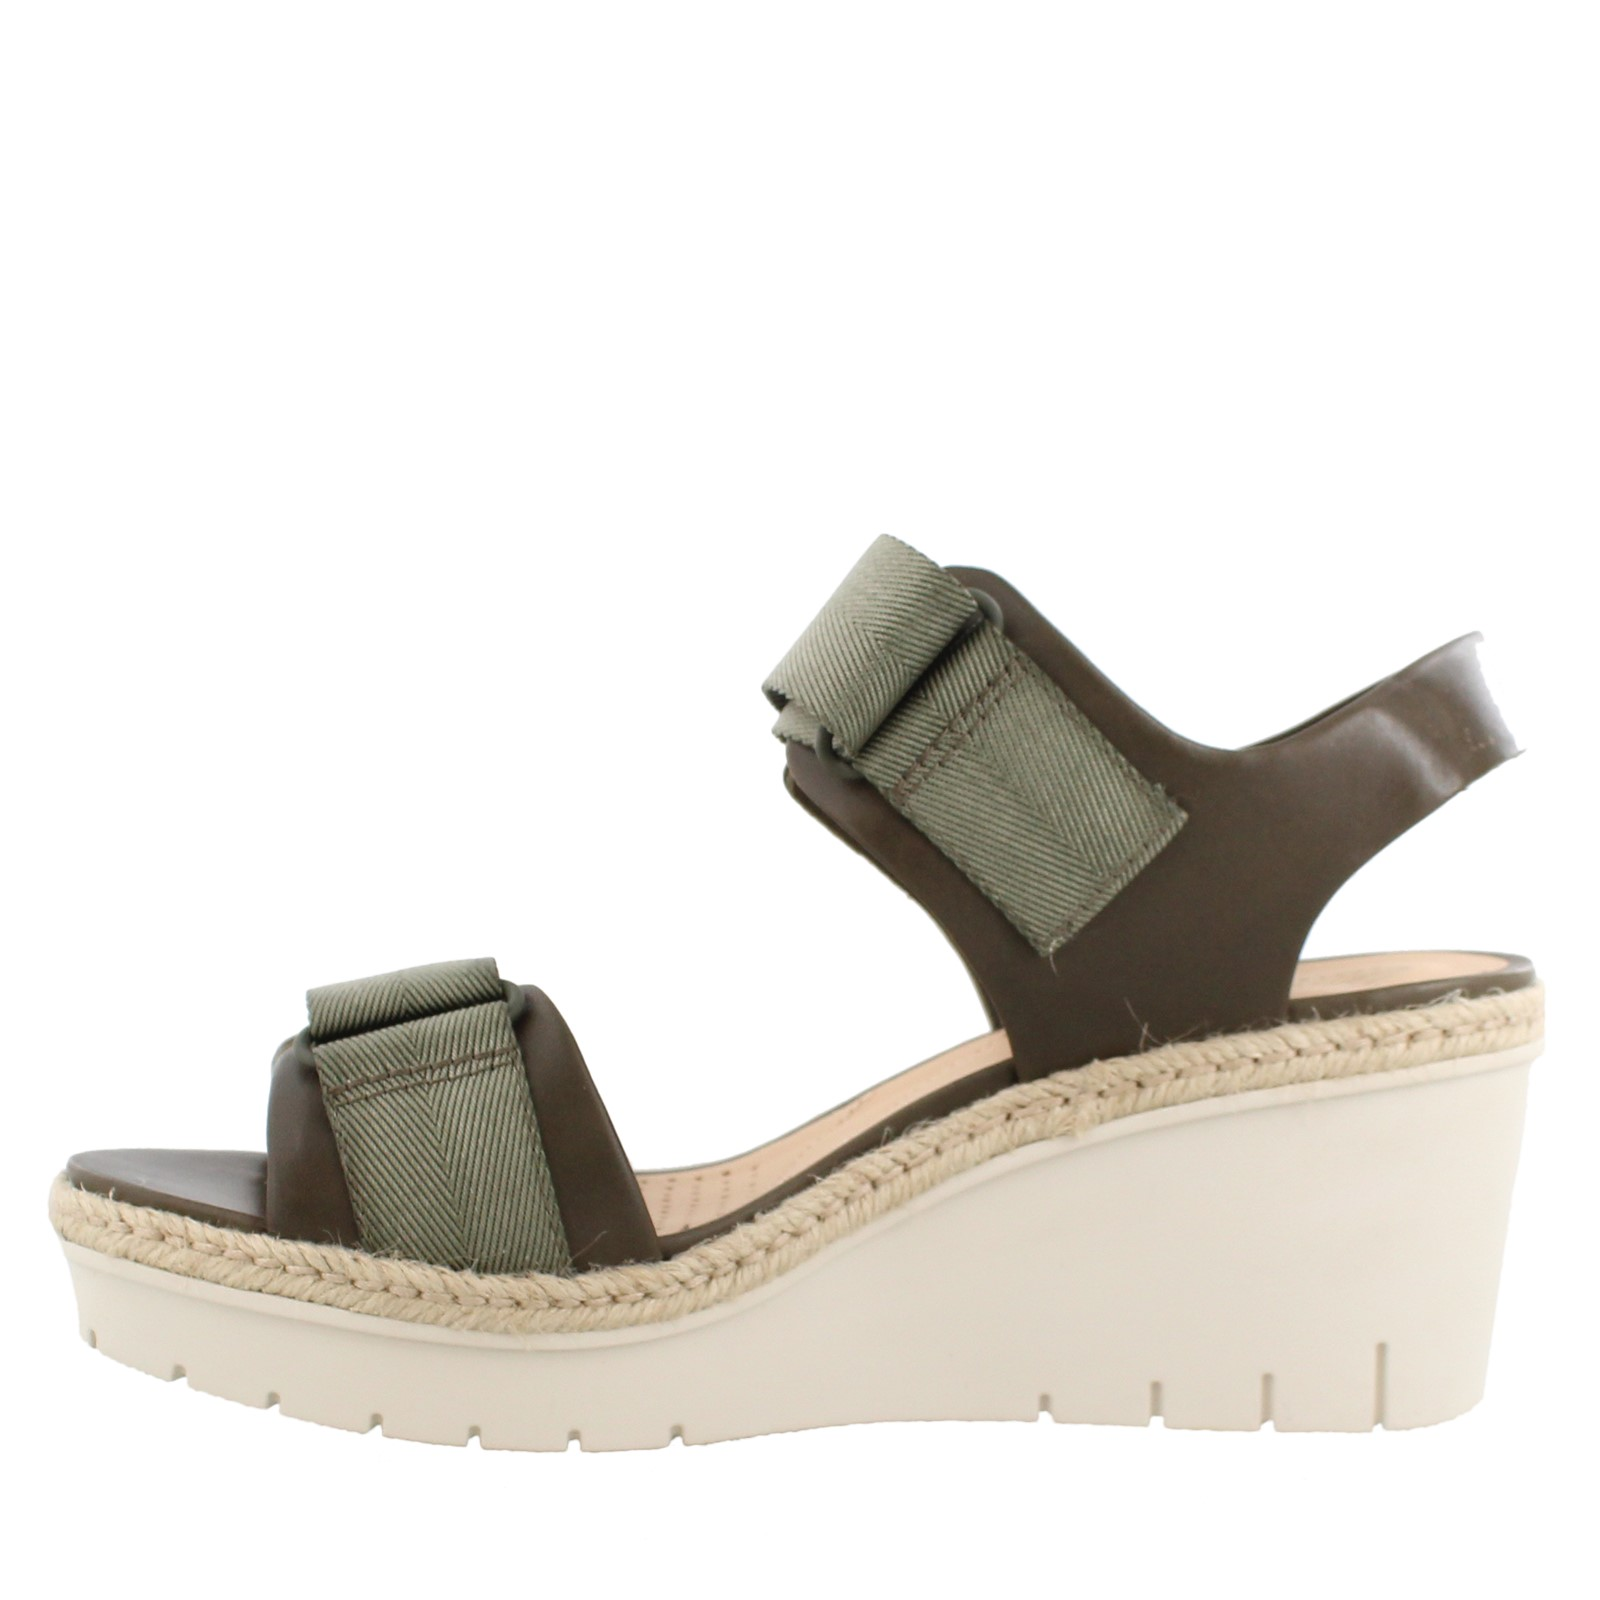 52ebadcbcbe Women's Clarks, Palm Shine Wedge Sandals